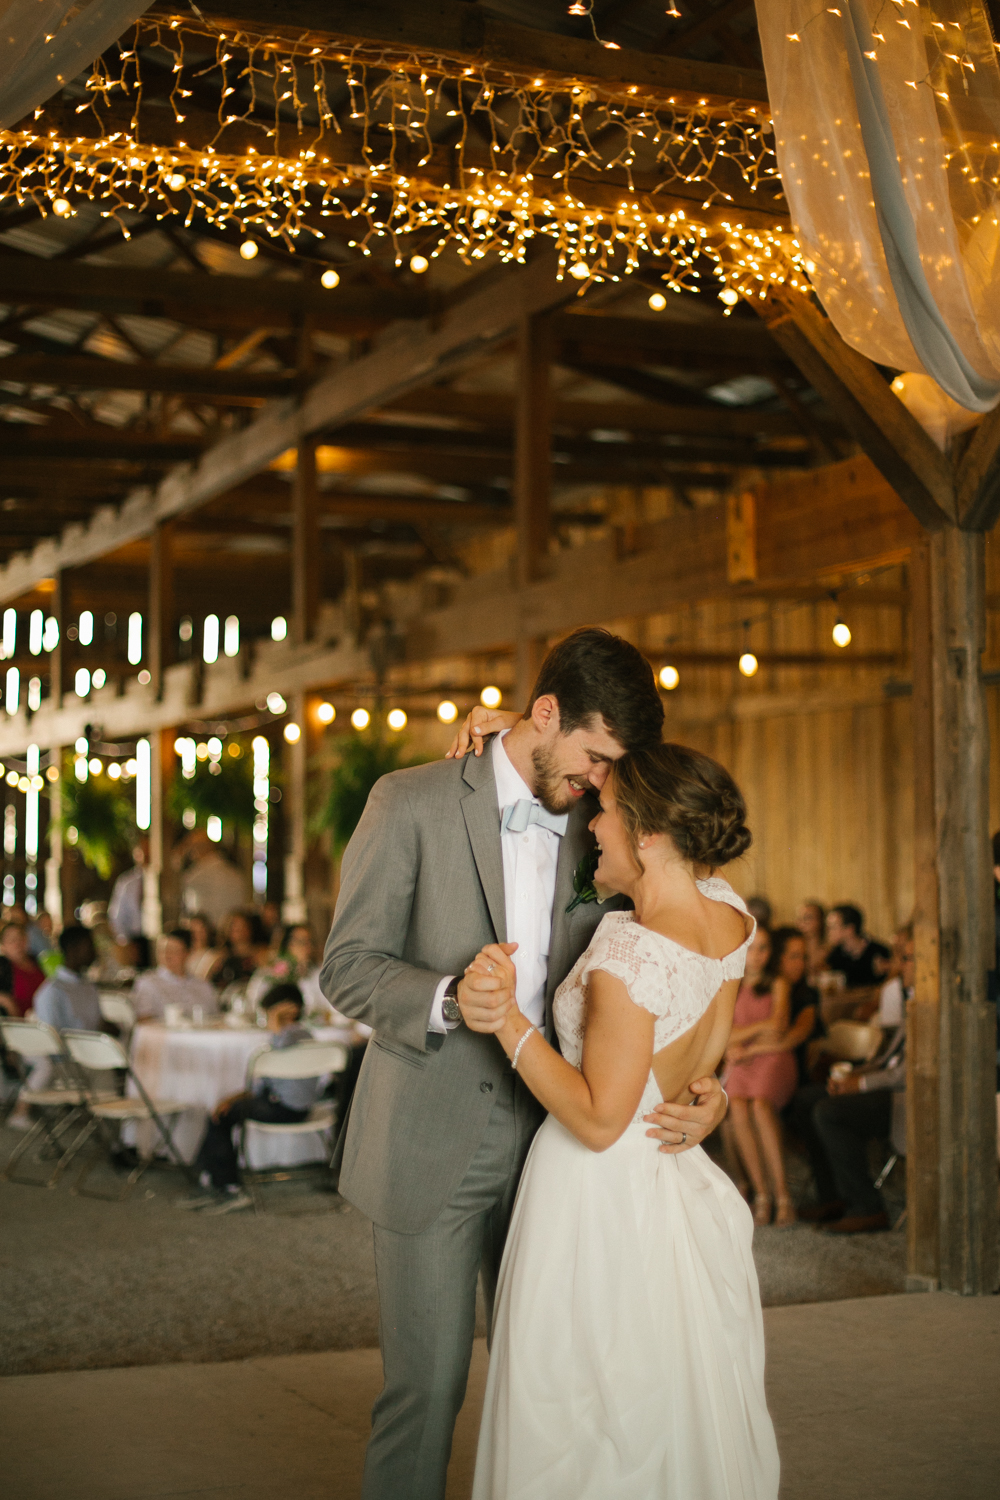 2019.06.01_CraskWedding_Starks-190.jpg